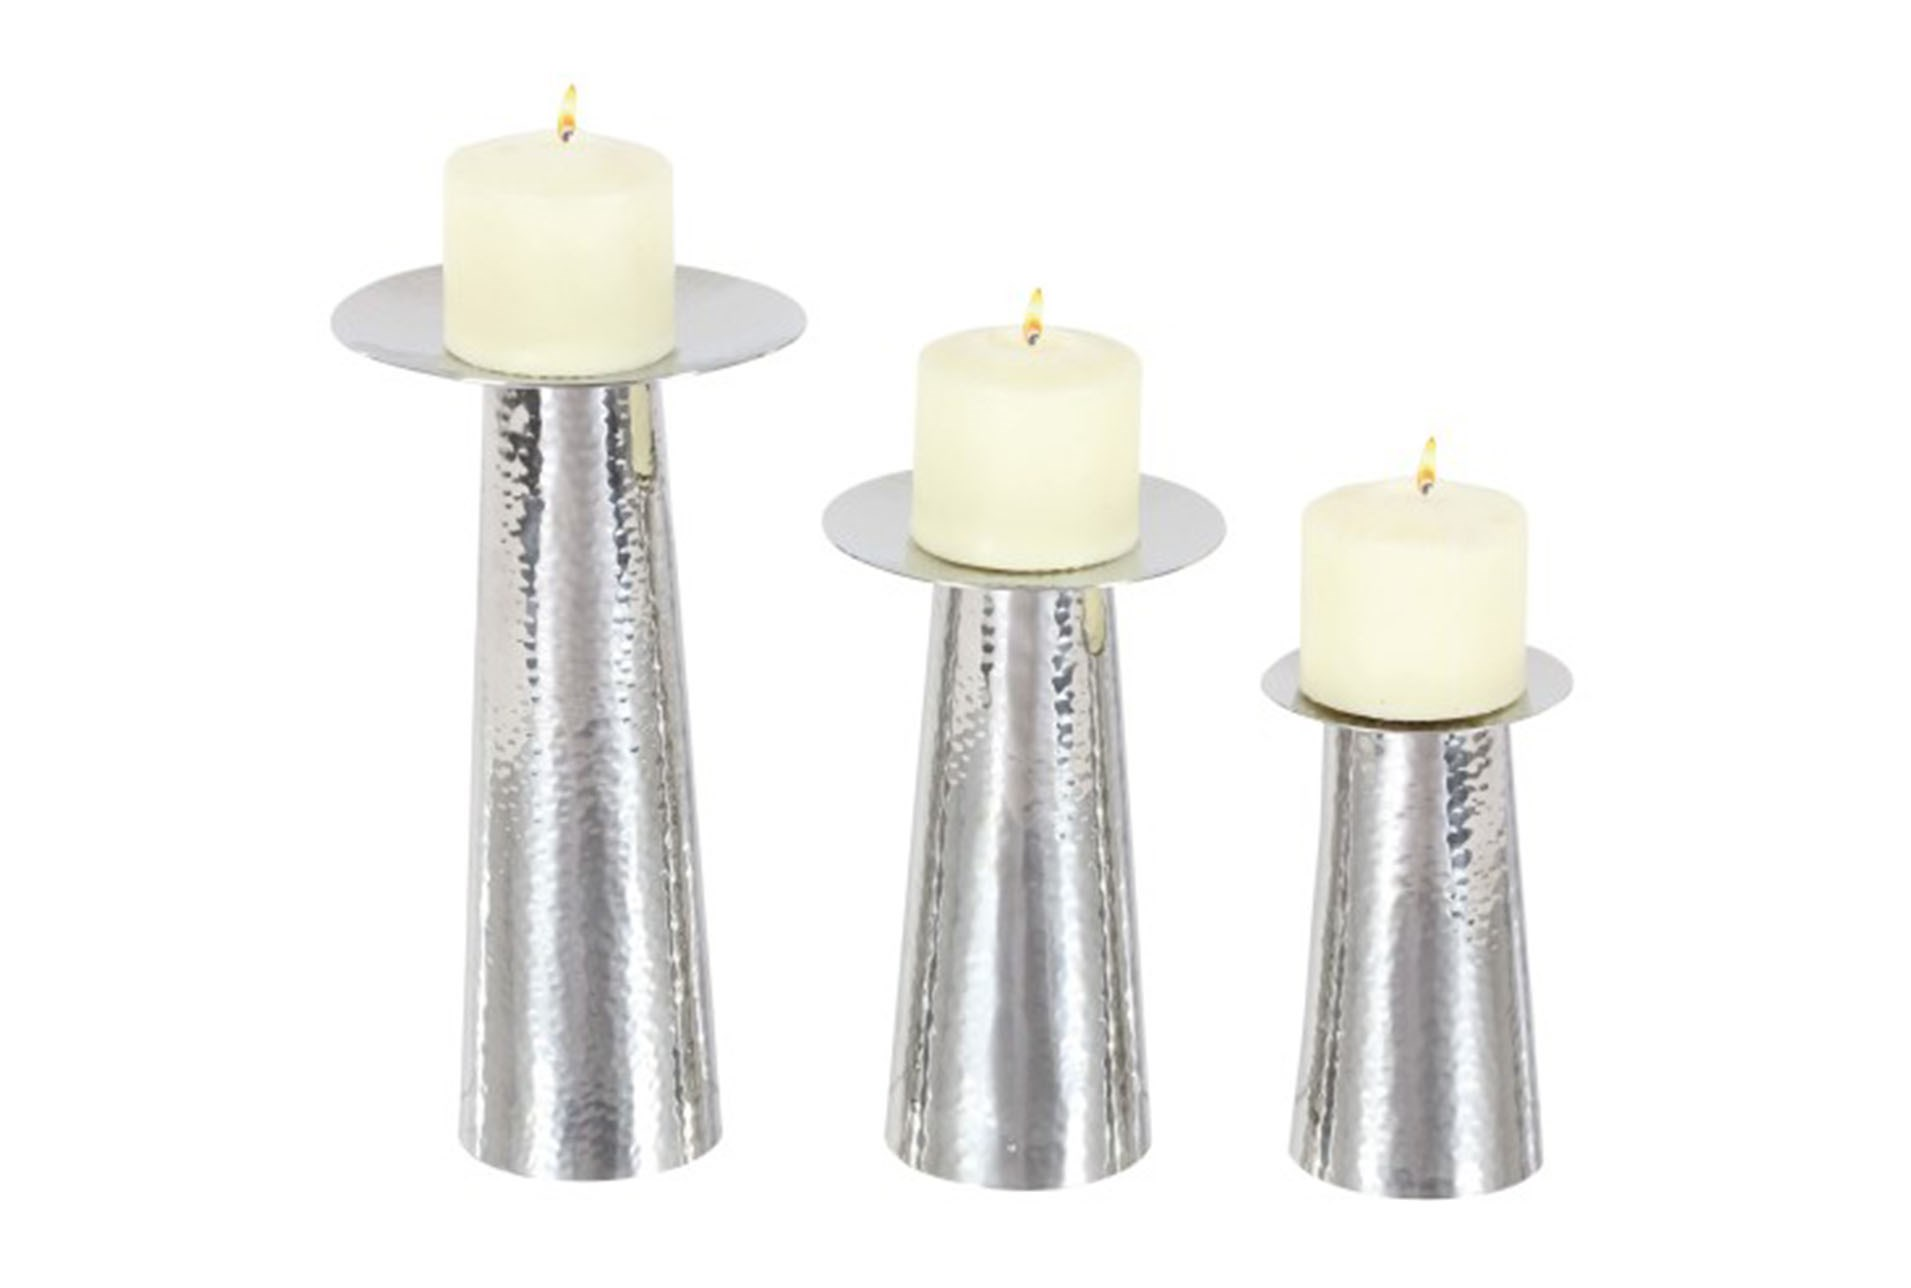 3 Piece Set Silver Modern Candleholder Qty 1 Has Been Successfully Added To Your Cart